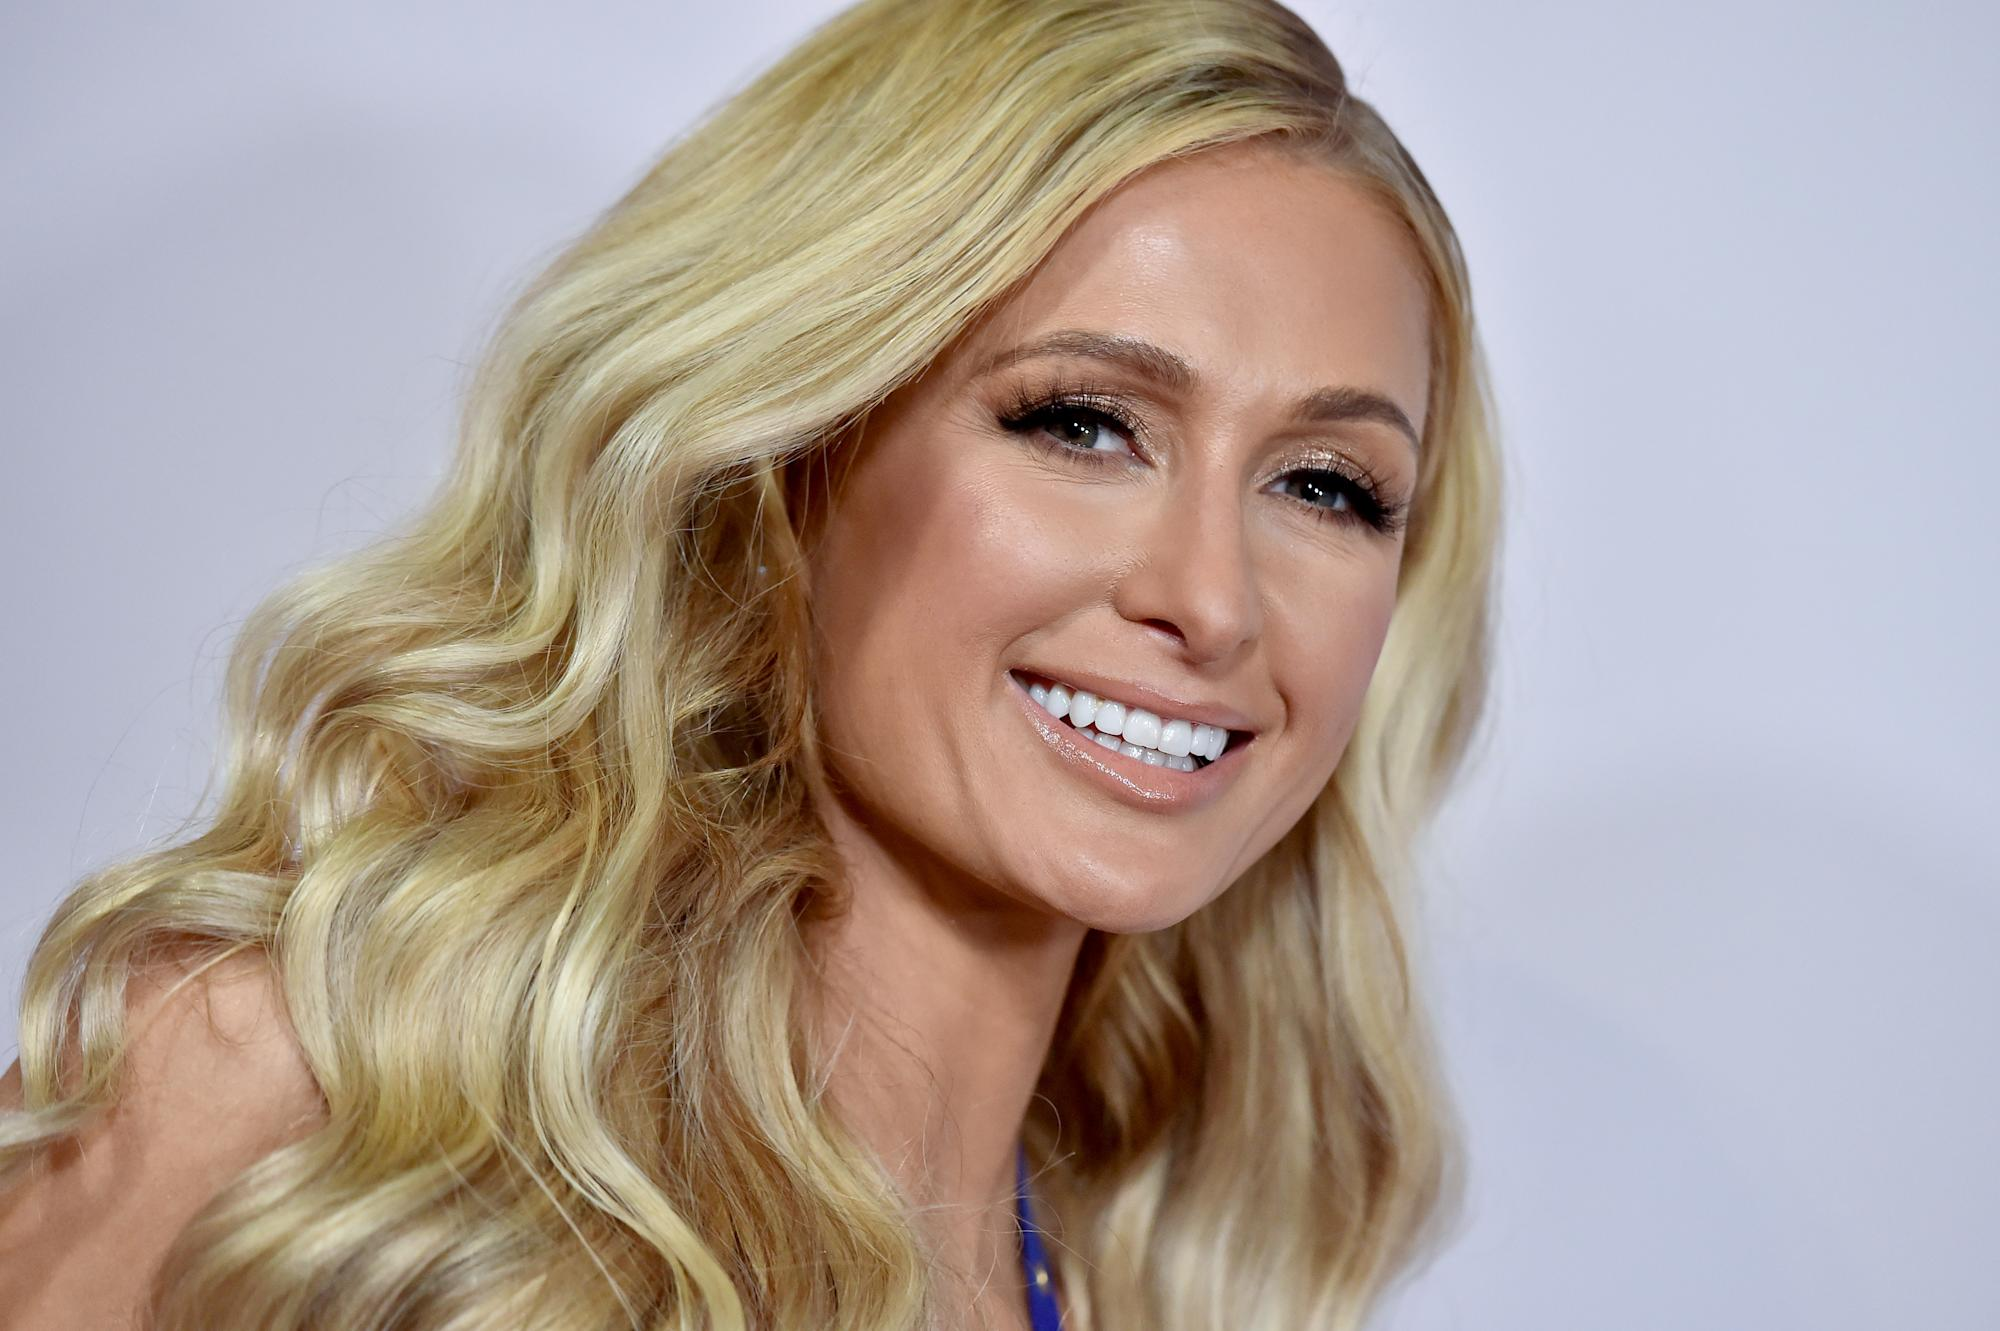 Paris Hilton reveals 'awkward' truth behind iconic photo with Britney Spears and Lindsay Lohan: 'We weren't getting along' - Yahoo Entertainment